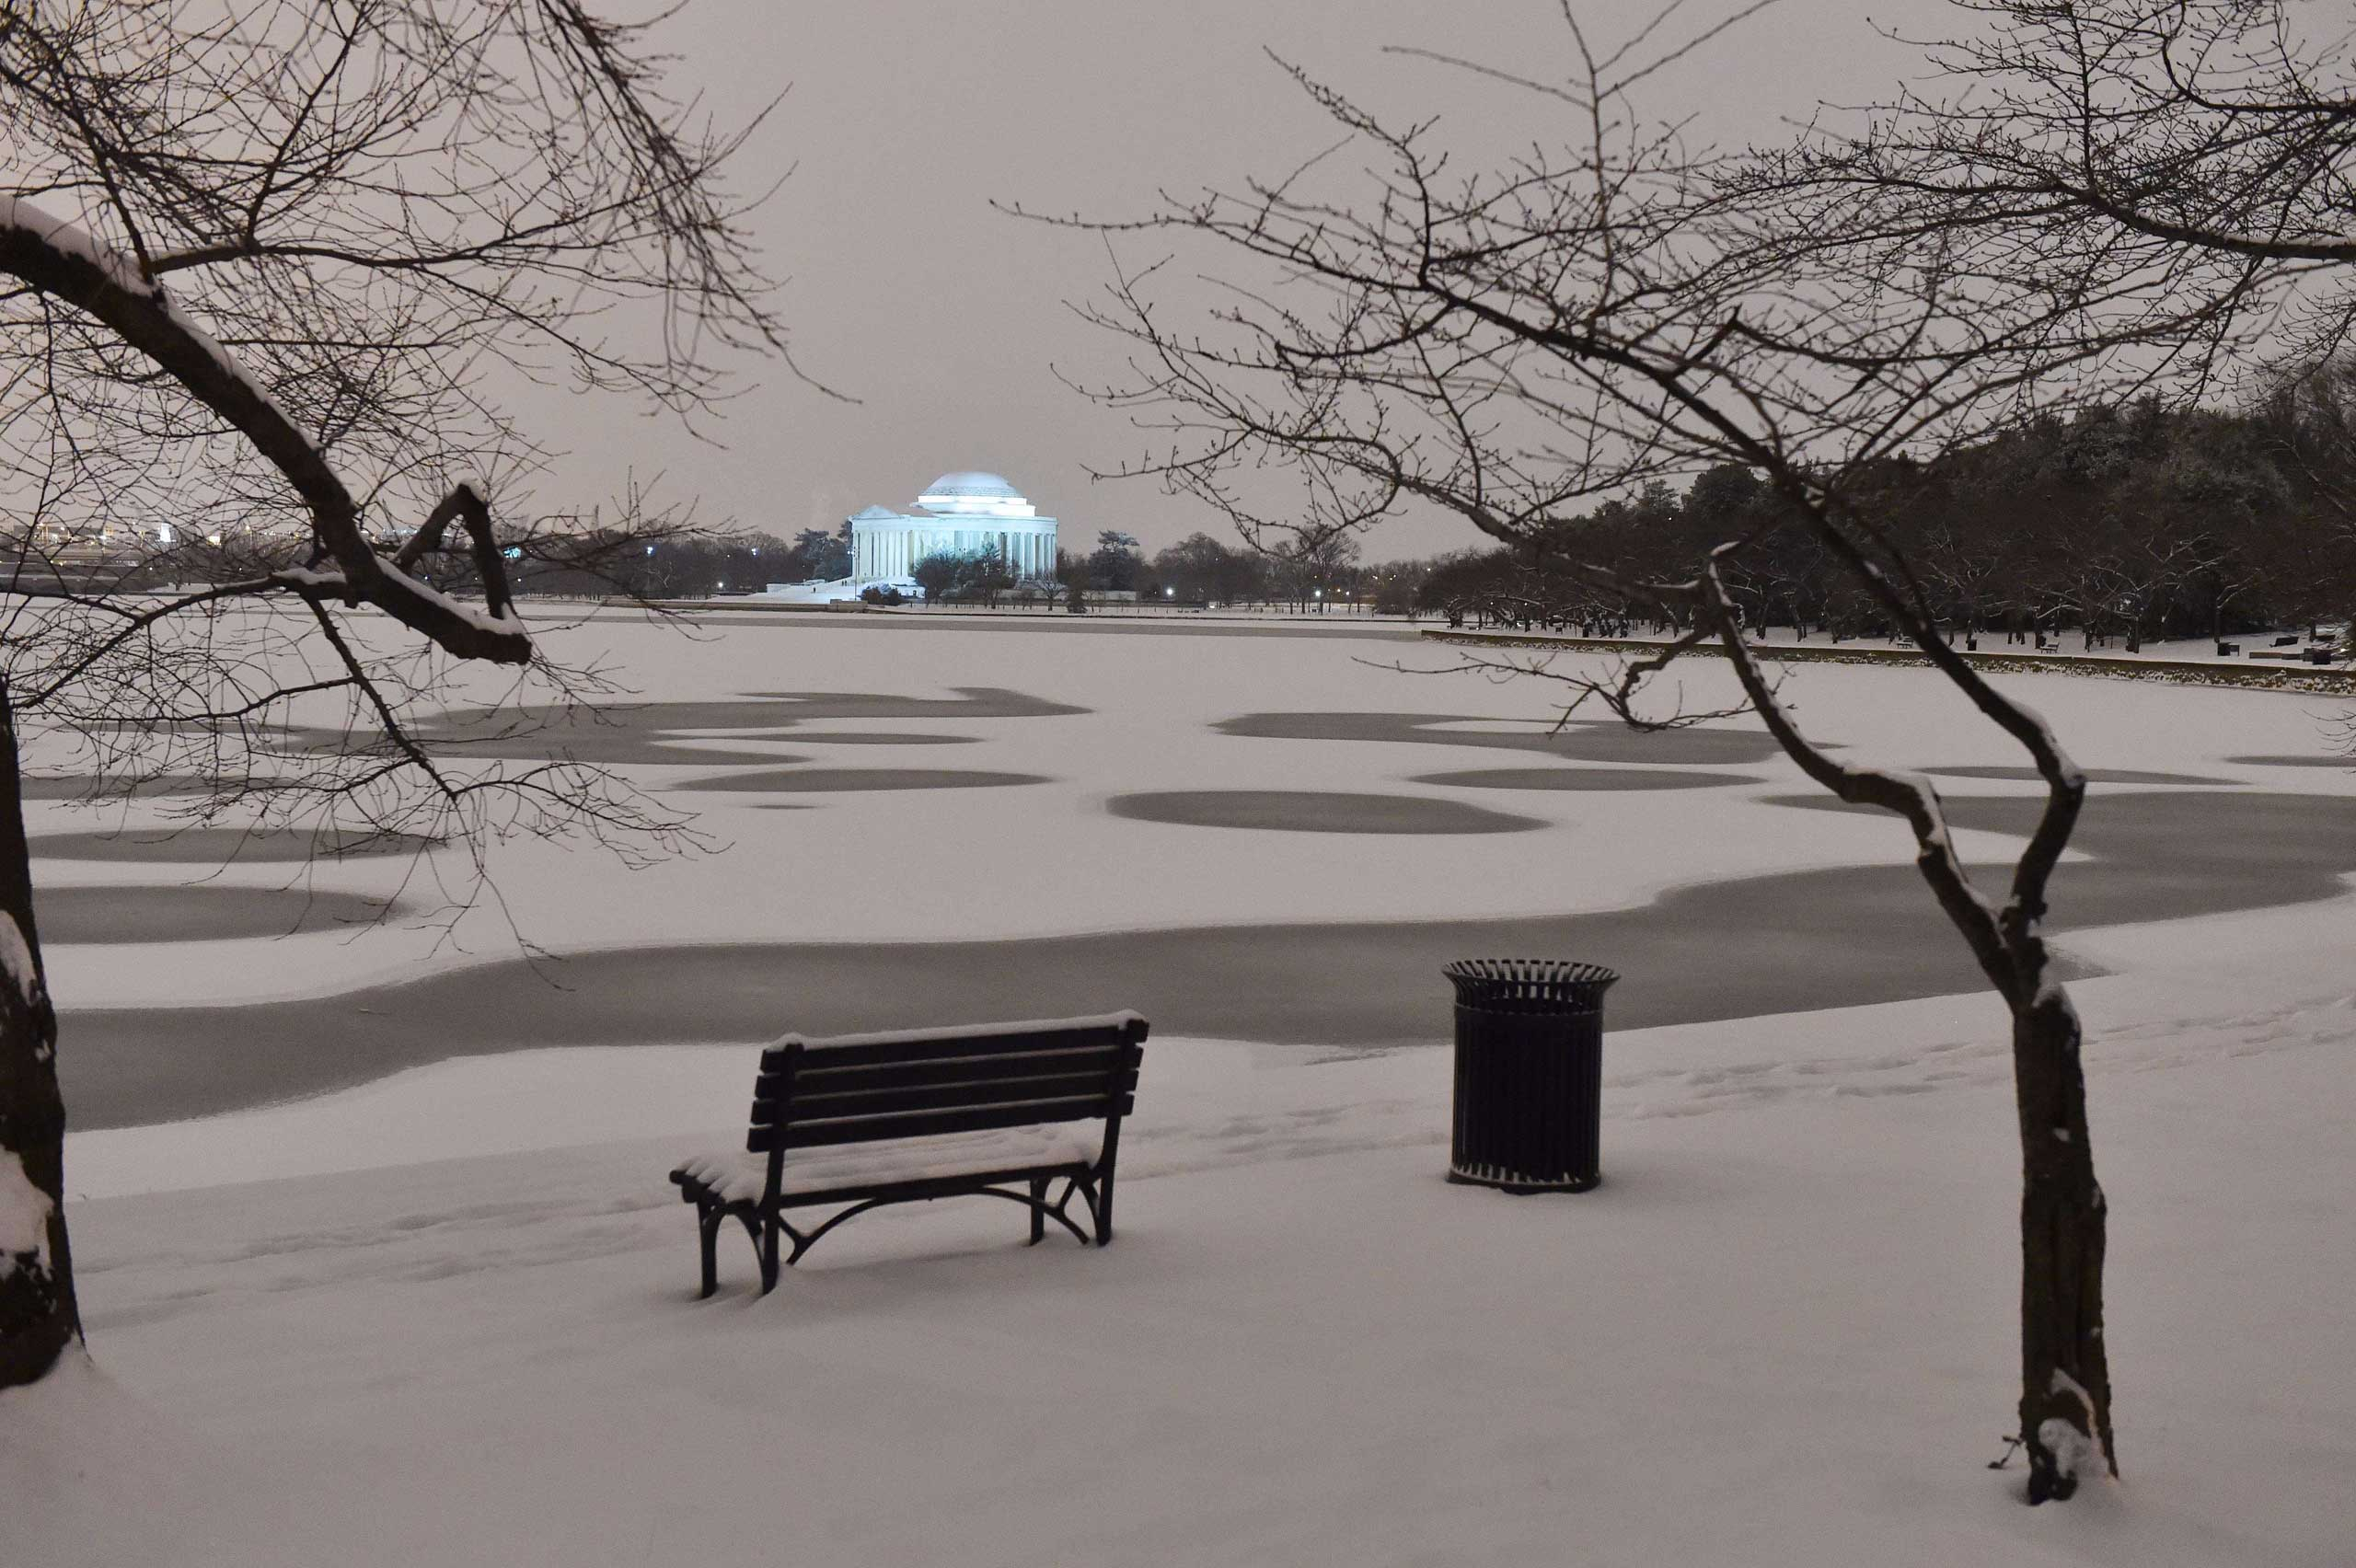 Snow covers the Tidal Basin in front of Jefferson Memorial in Washington on Feb. 16, 2015.